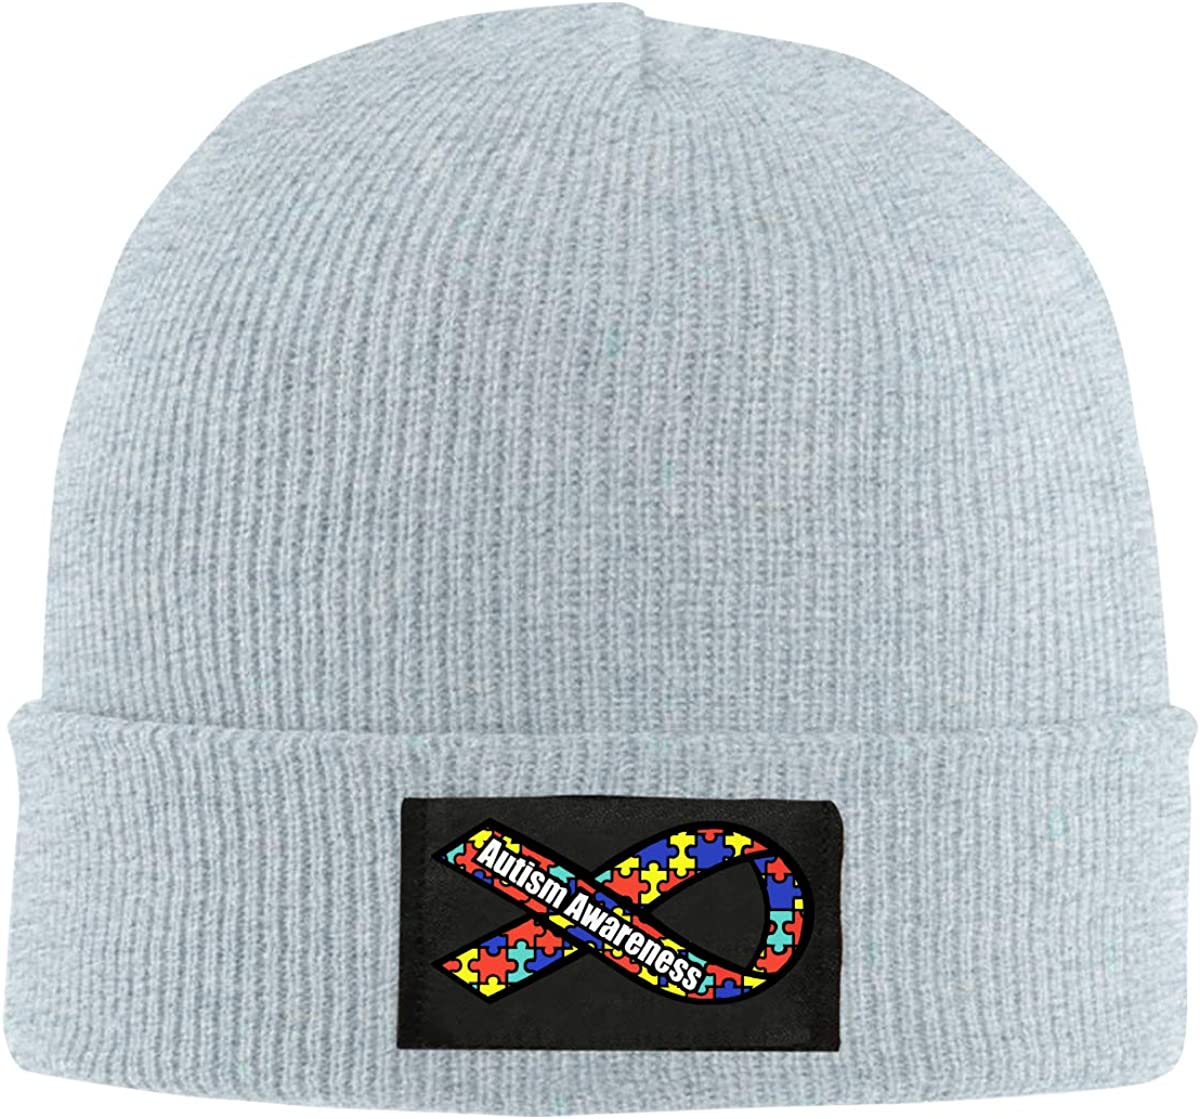 BF5Y6z/&MA Unisex Autism Awareness Knitted Hat 100/% Acrylic Daily Beanies Cap